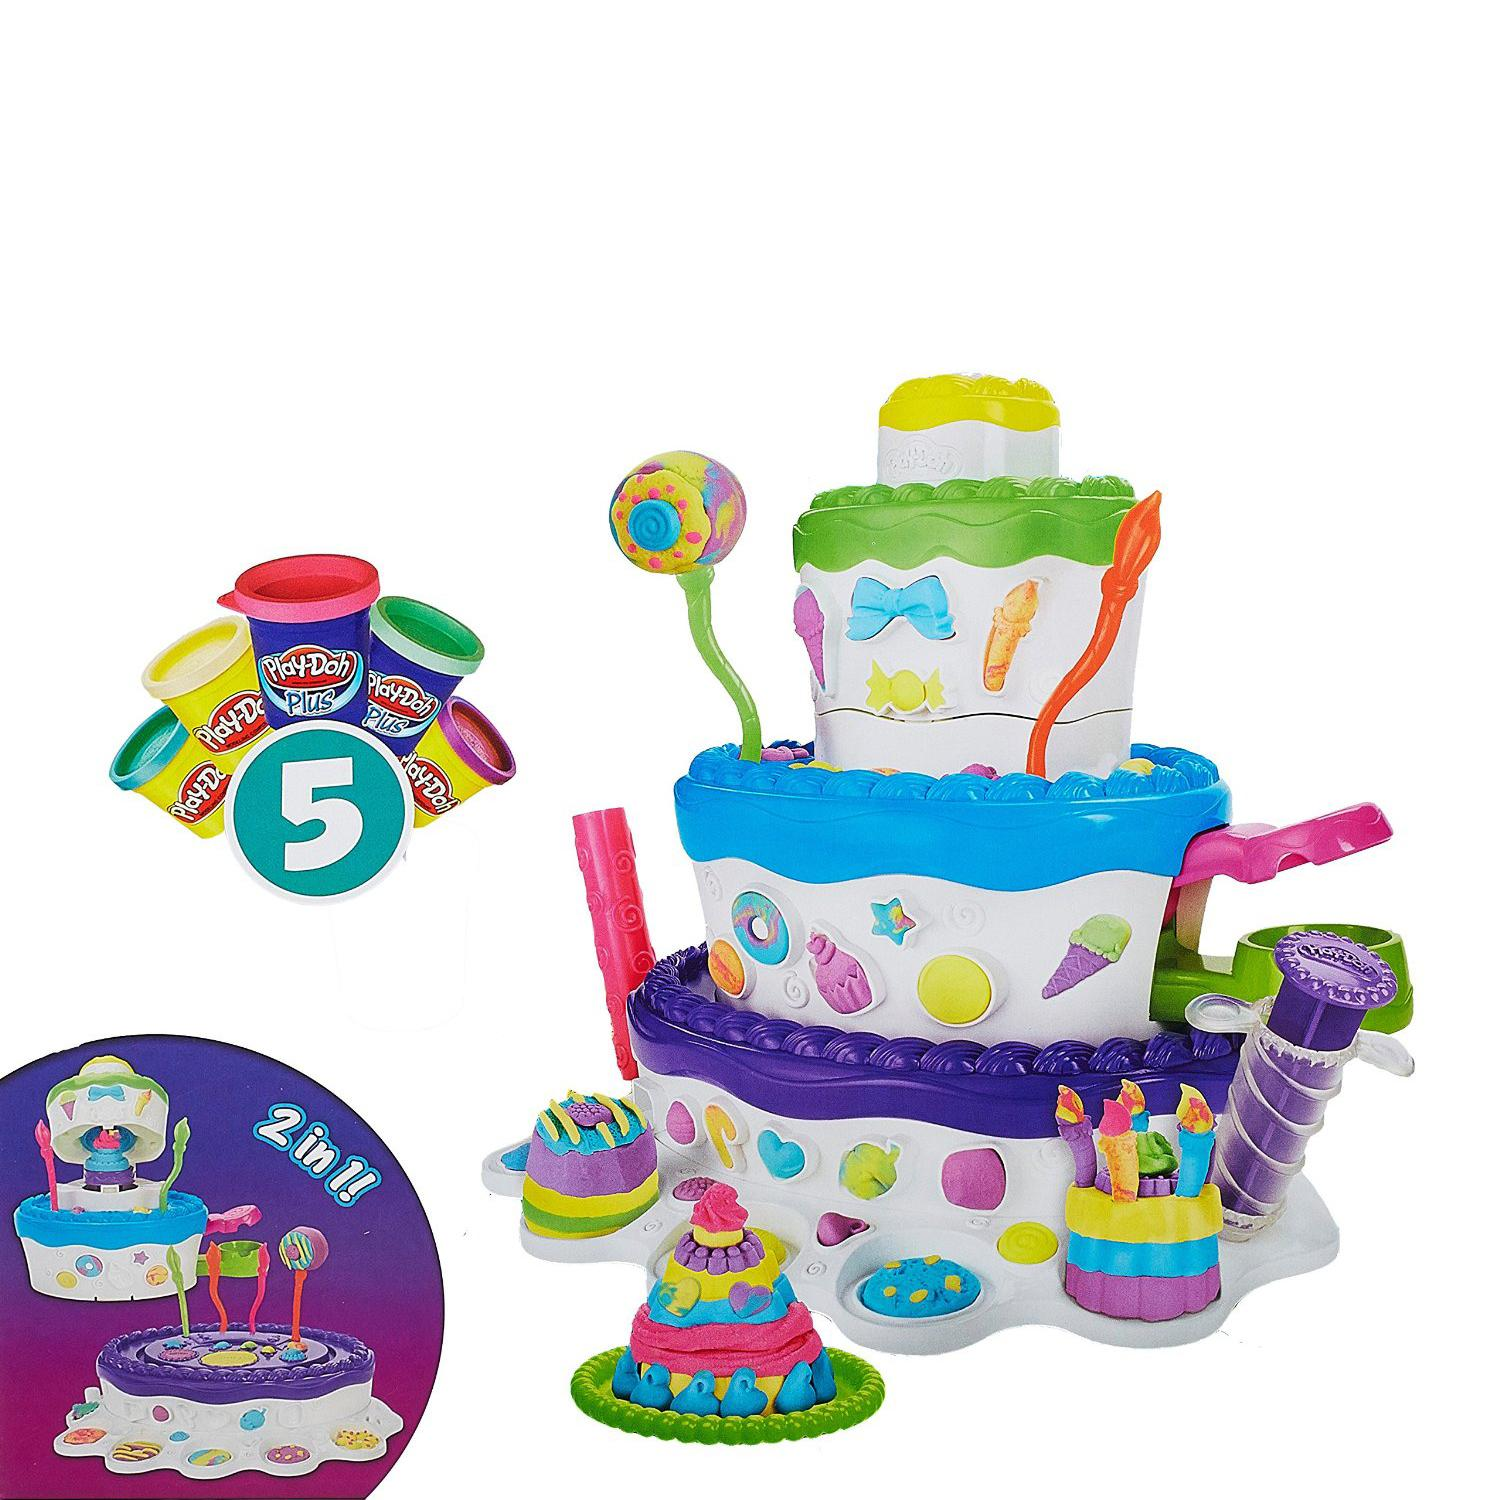 Playdough Cake Decorating Kit : Play-Doh Cake Mountain Childrens/Kids Play-set 3 Modelling Dough Tubs/Pots eBay